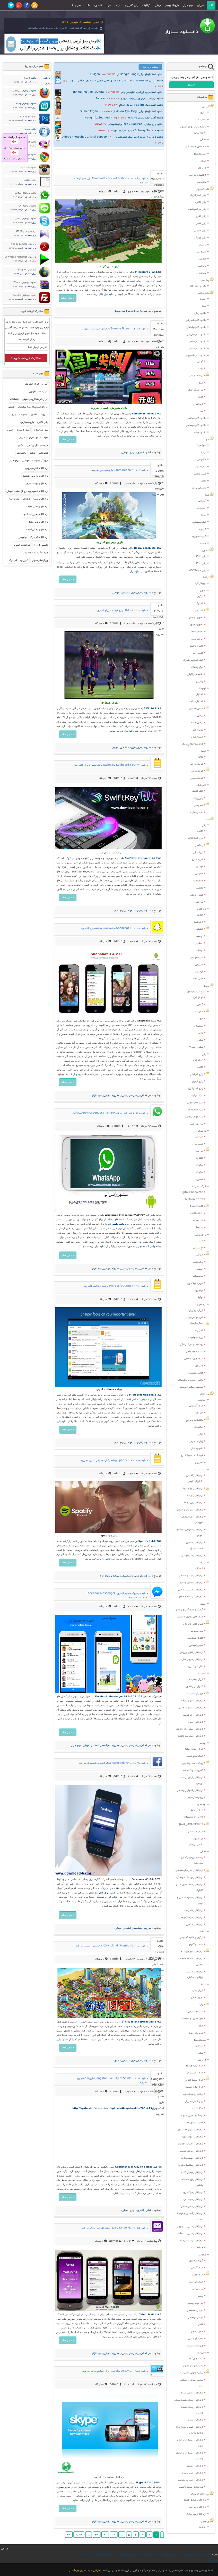 Download-bazar ir Competitors, Revenue and Employees - Owler Company